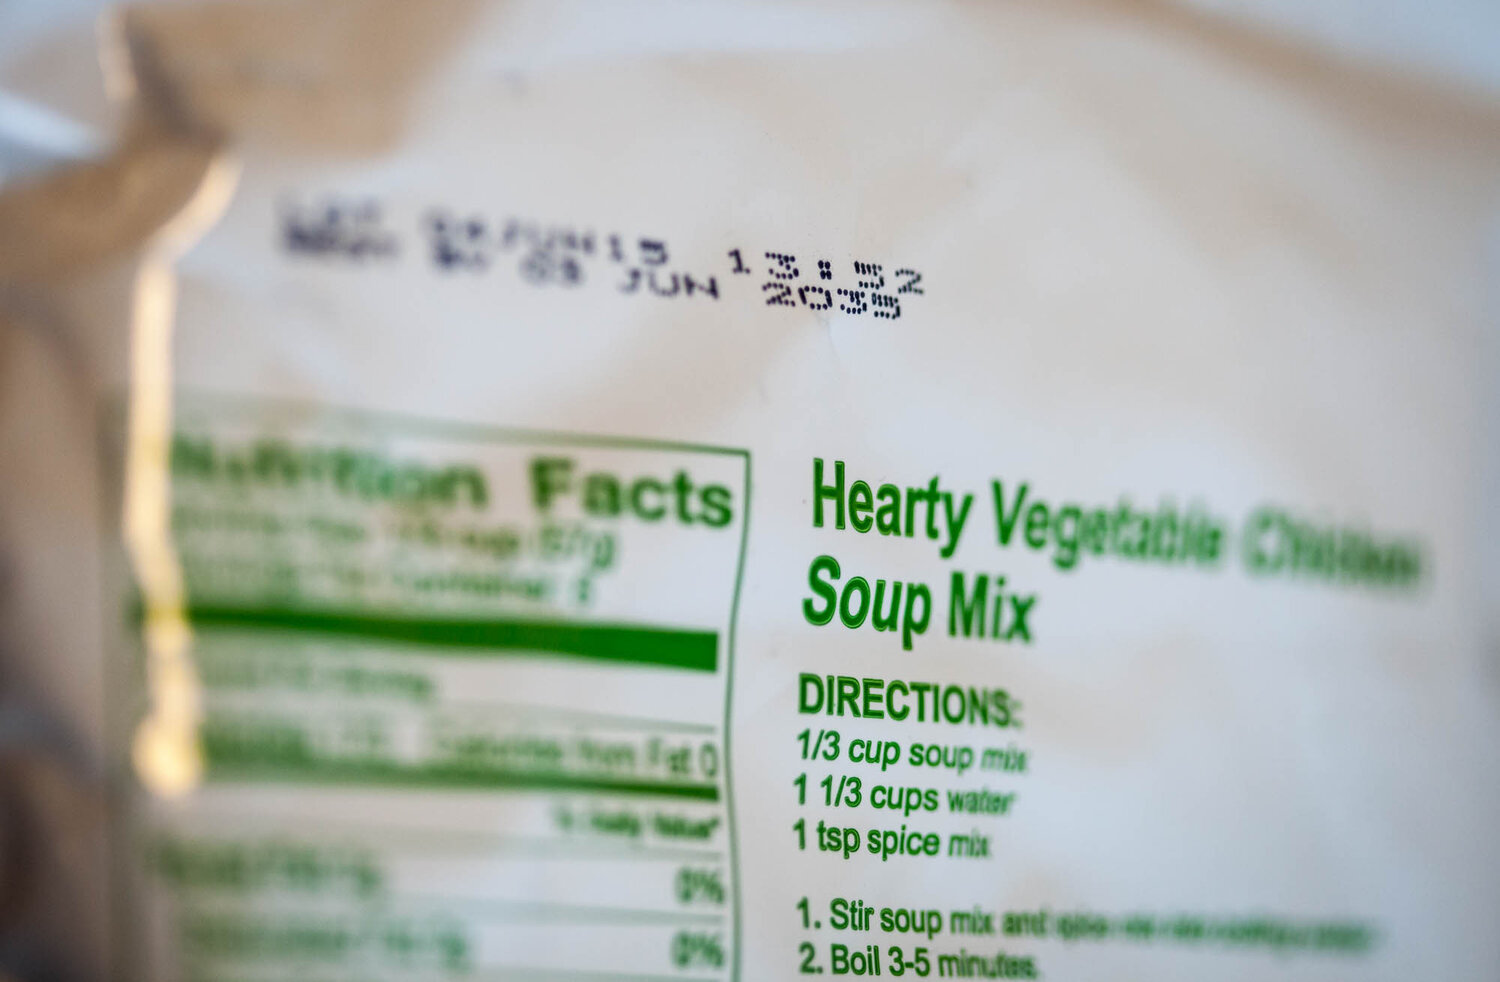 This soup has an expiration date of June 2035.